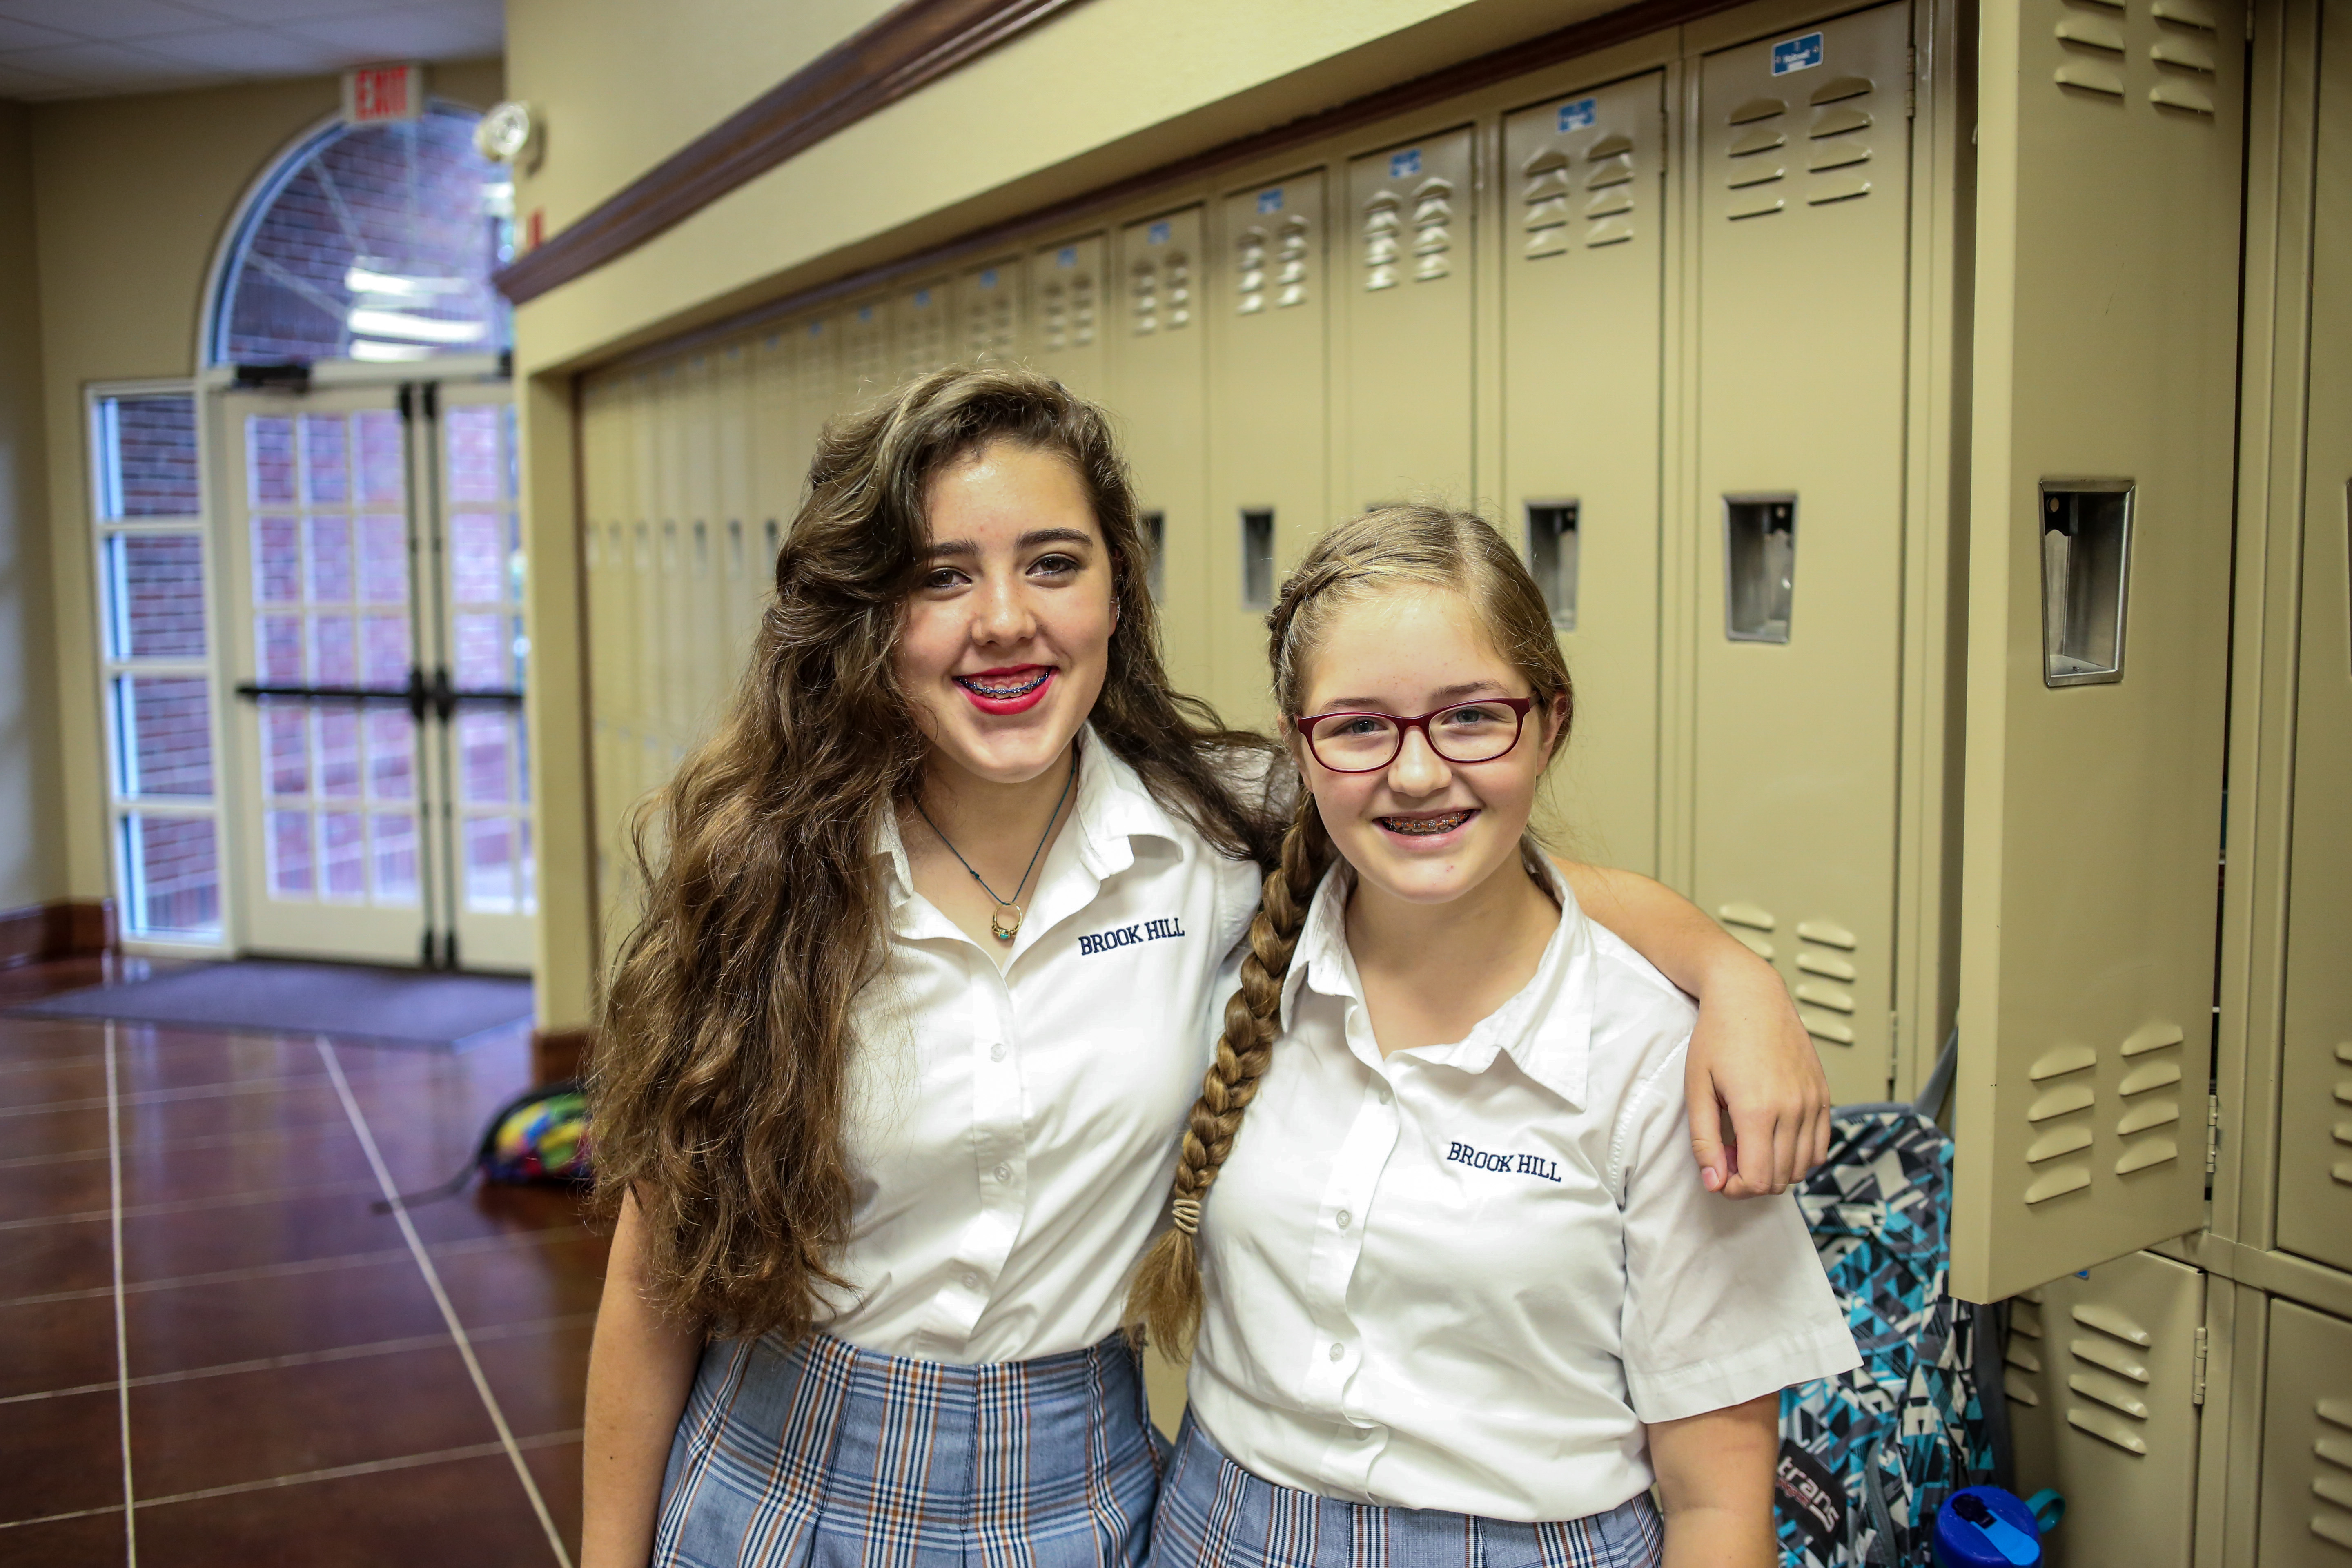 First Day Middle Amp Upper School Brook Hill School